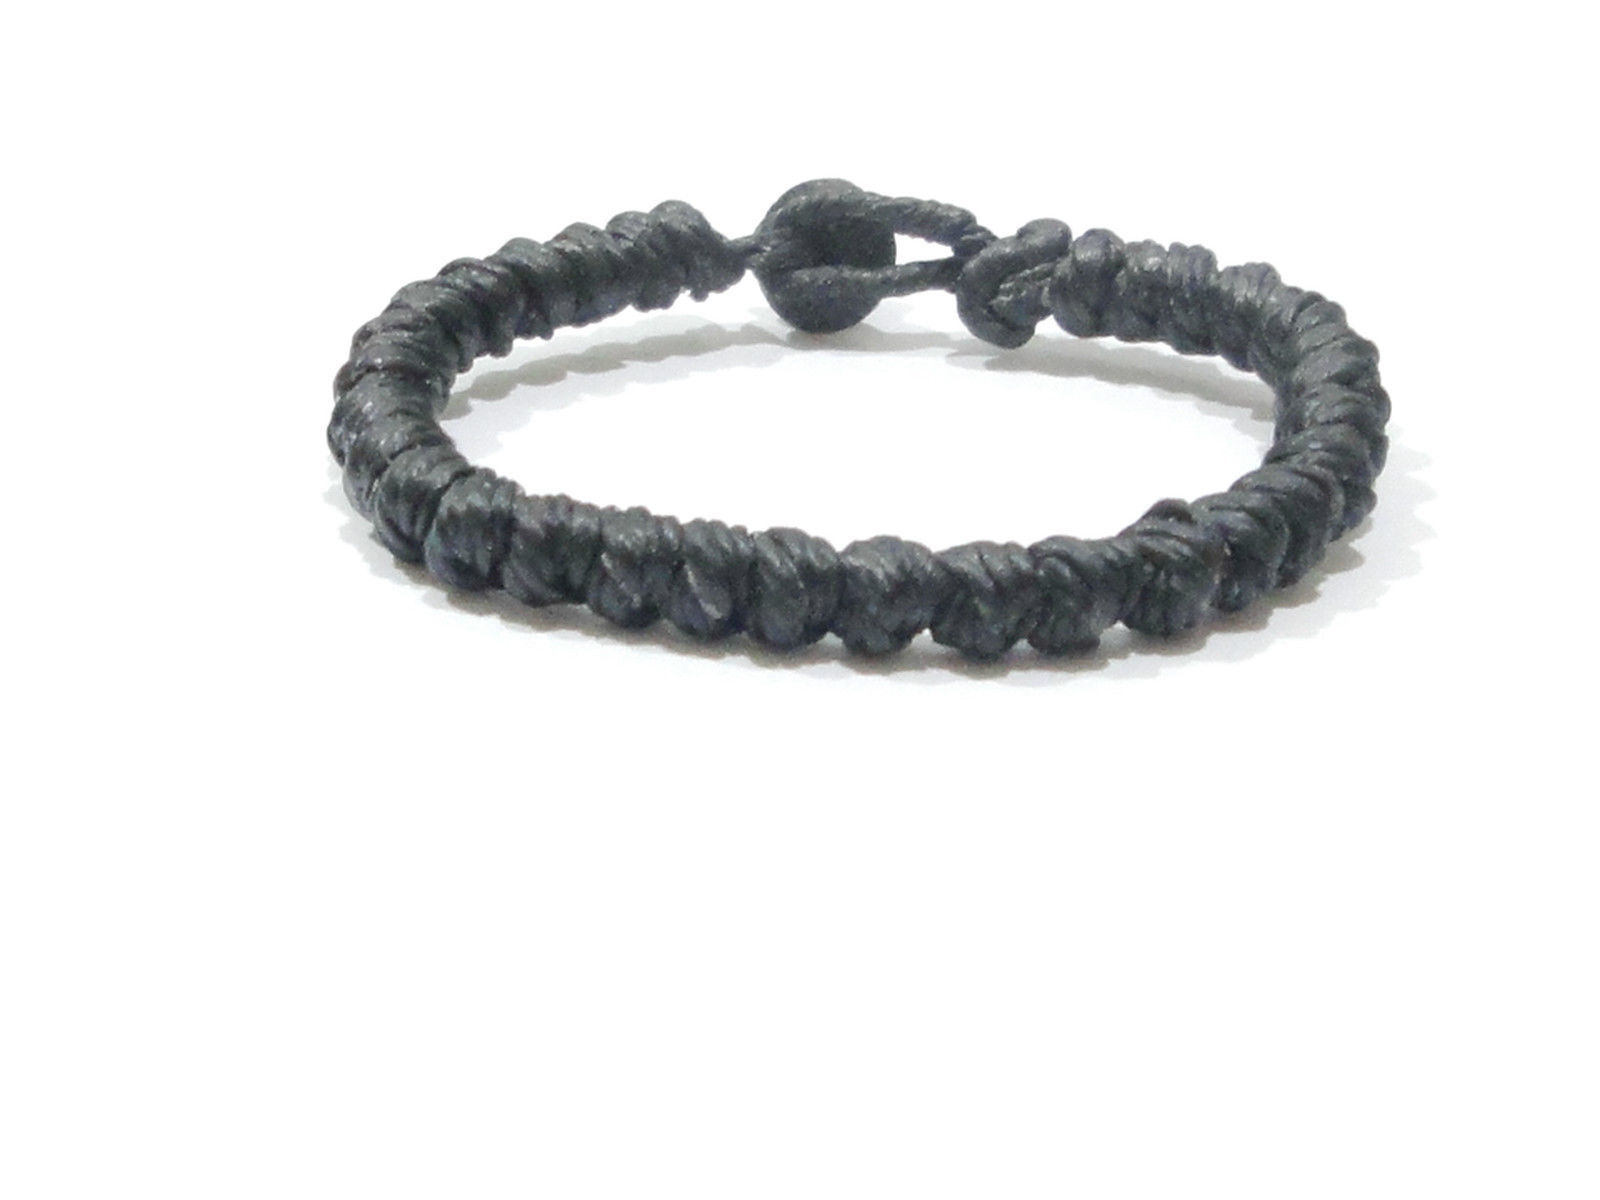 Fair Trade Slim Black Cotton Knotted Thai Wristband Handcrafted Bracelet